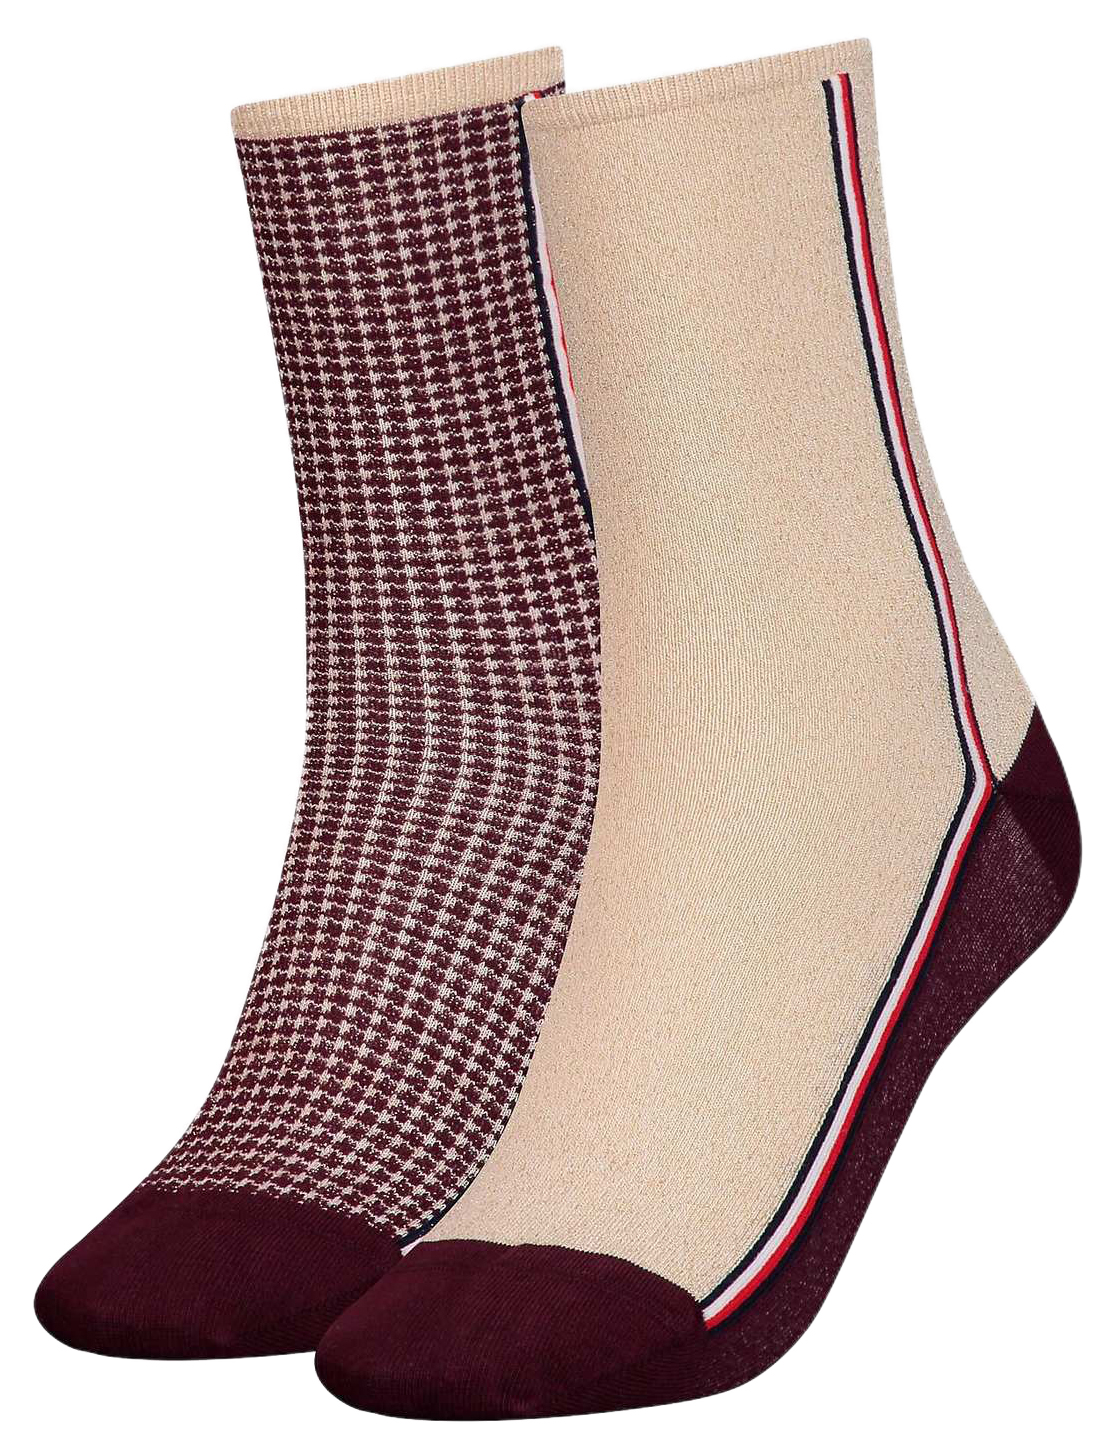 Tommy Hilfiger 2 pack socks TH Women Sock 2P Houndstooth Lurex